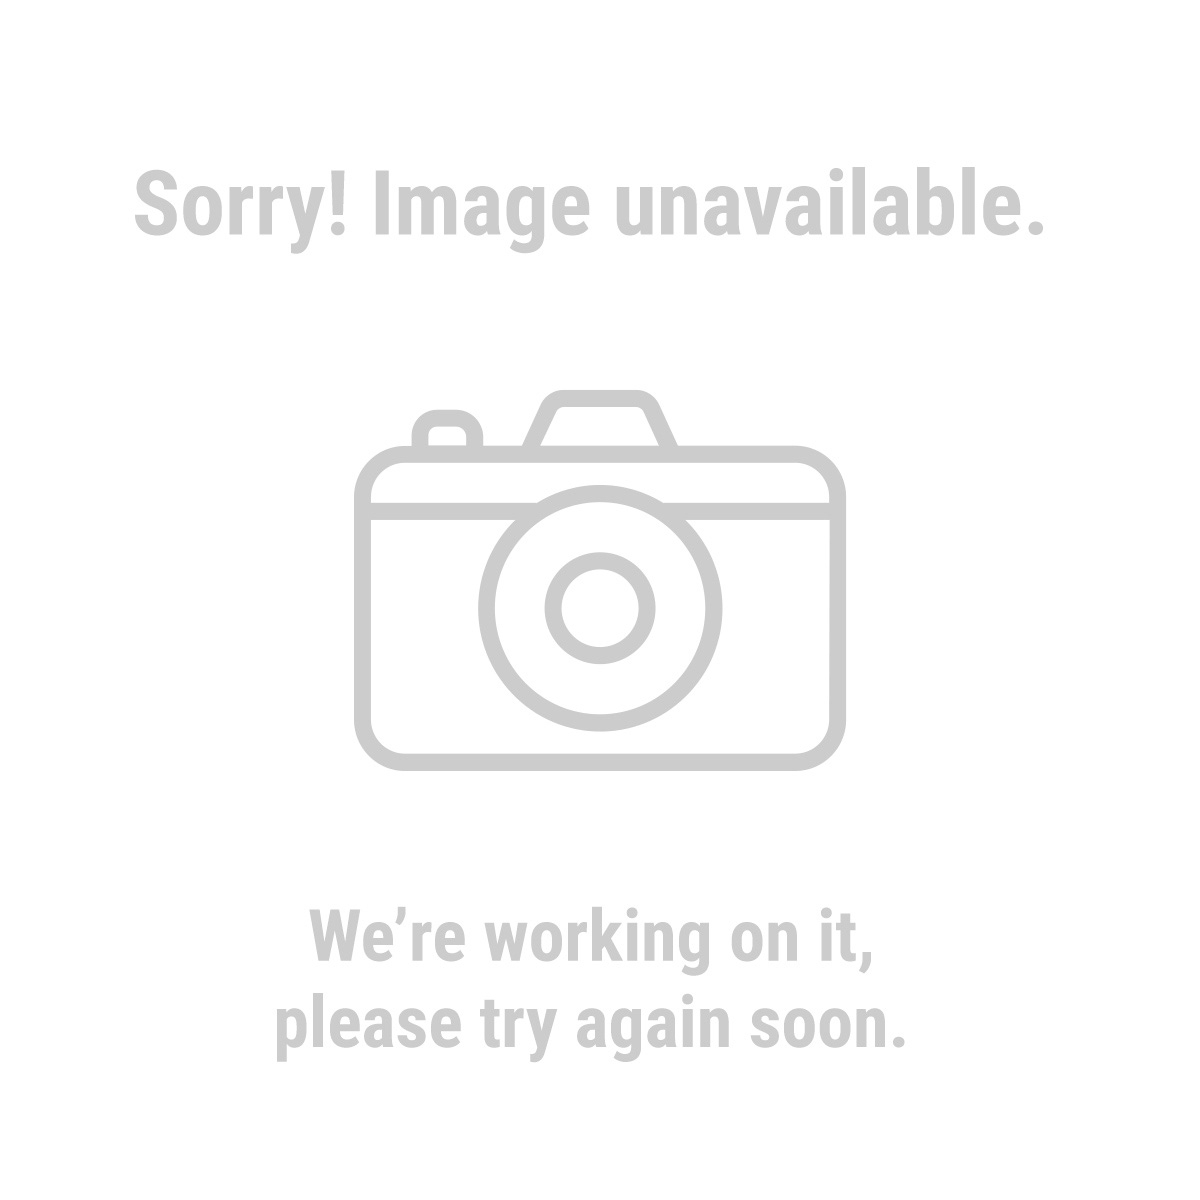 Bunker Hill Security® 61806 Outdoor Imitation Security Camera